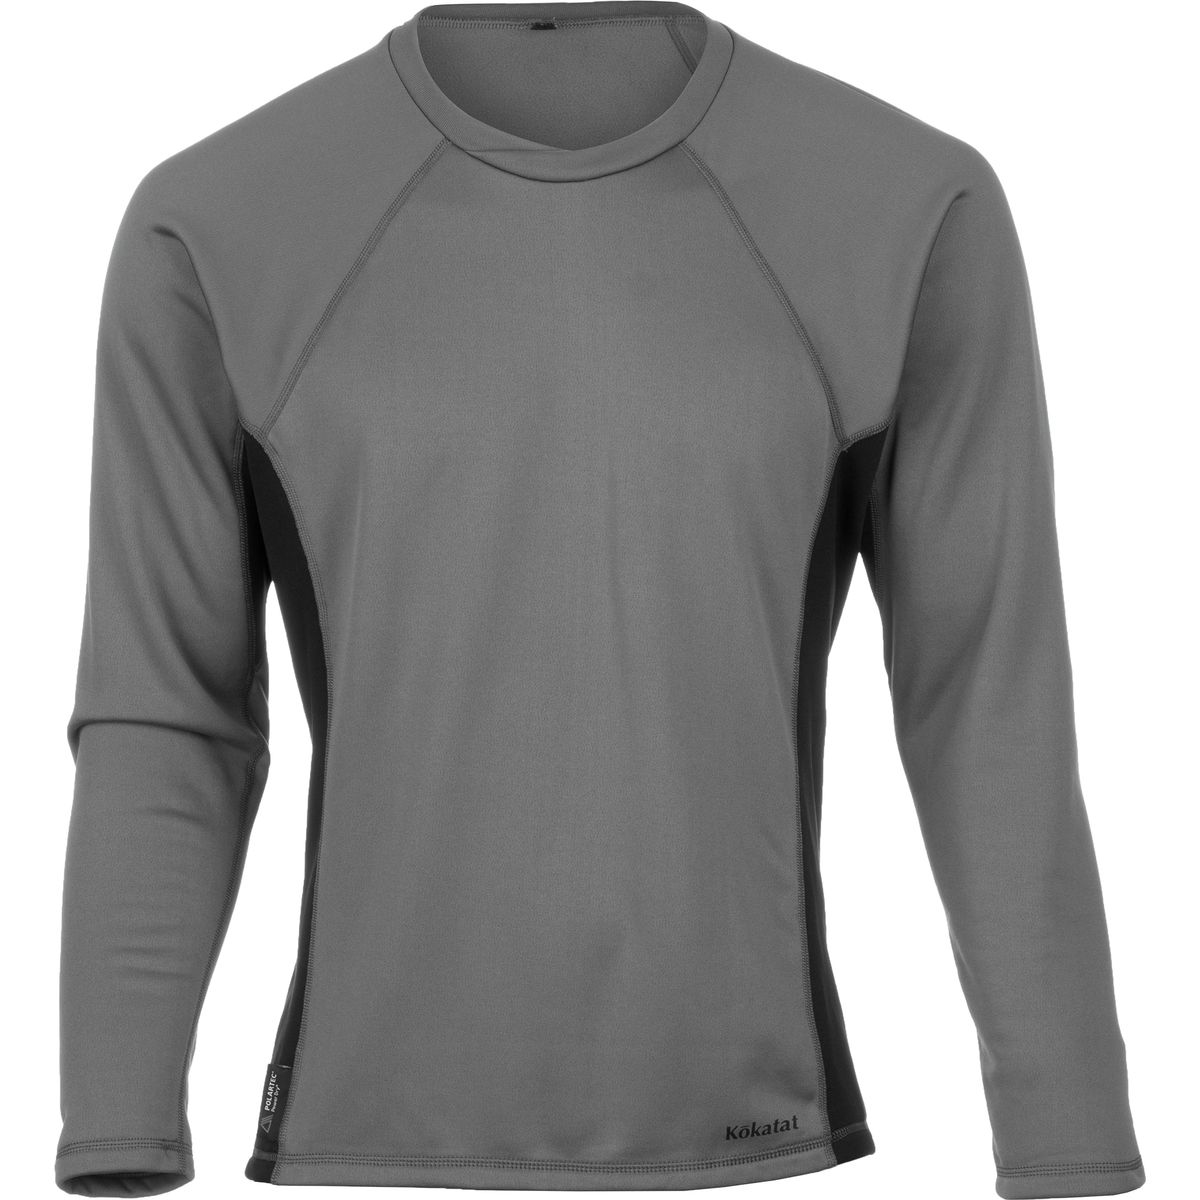 Kokatat Outercore Long-Sleeve Top